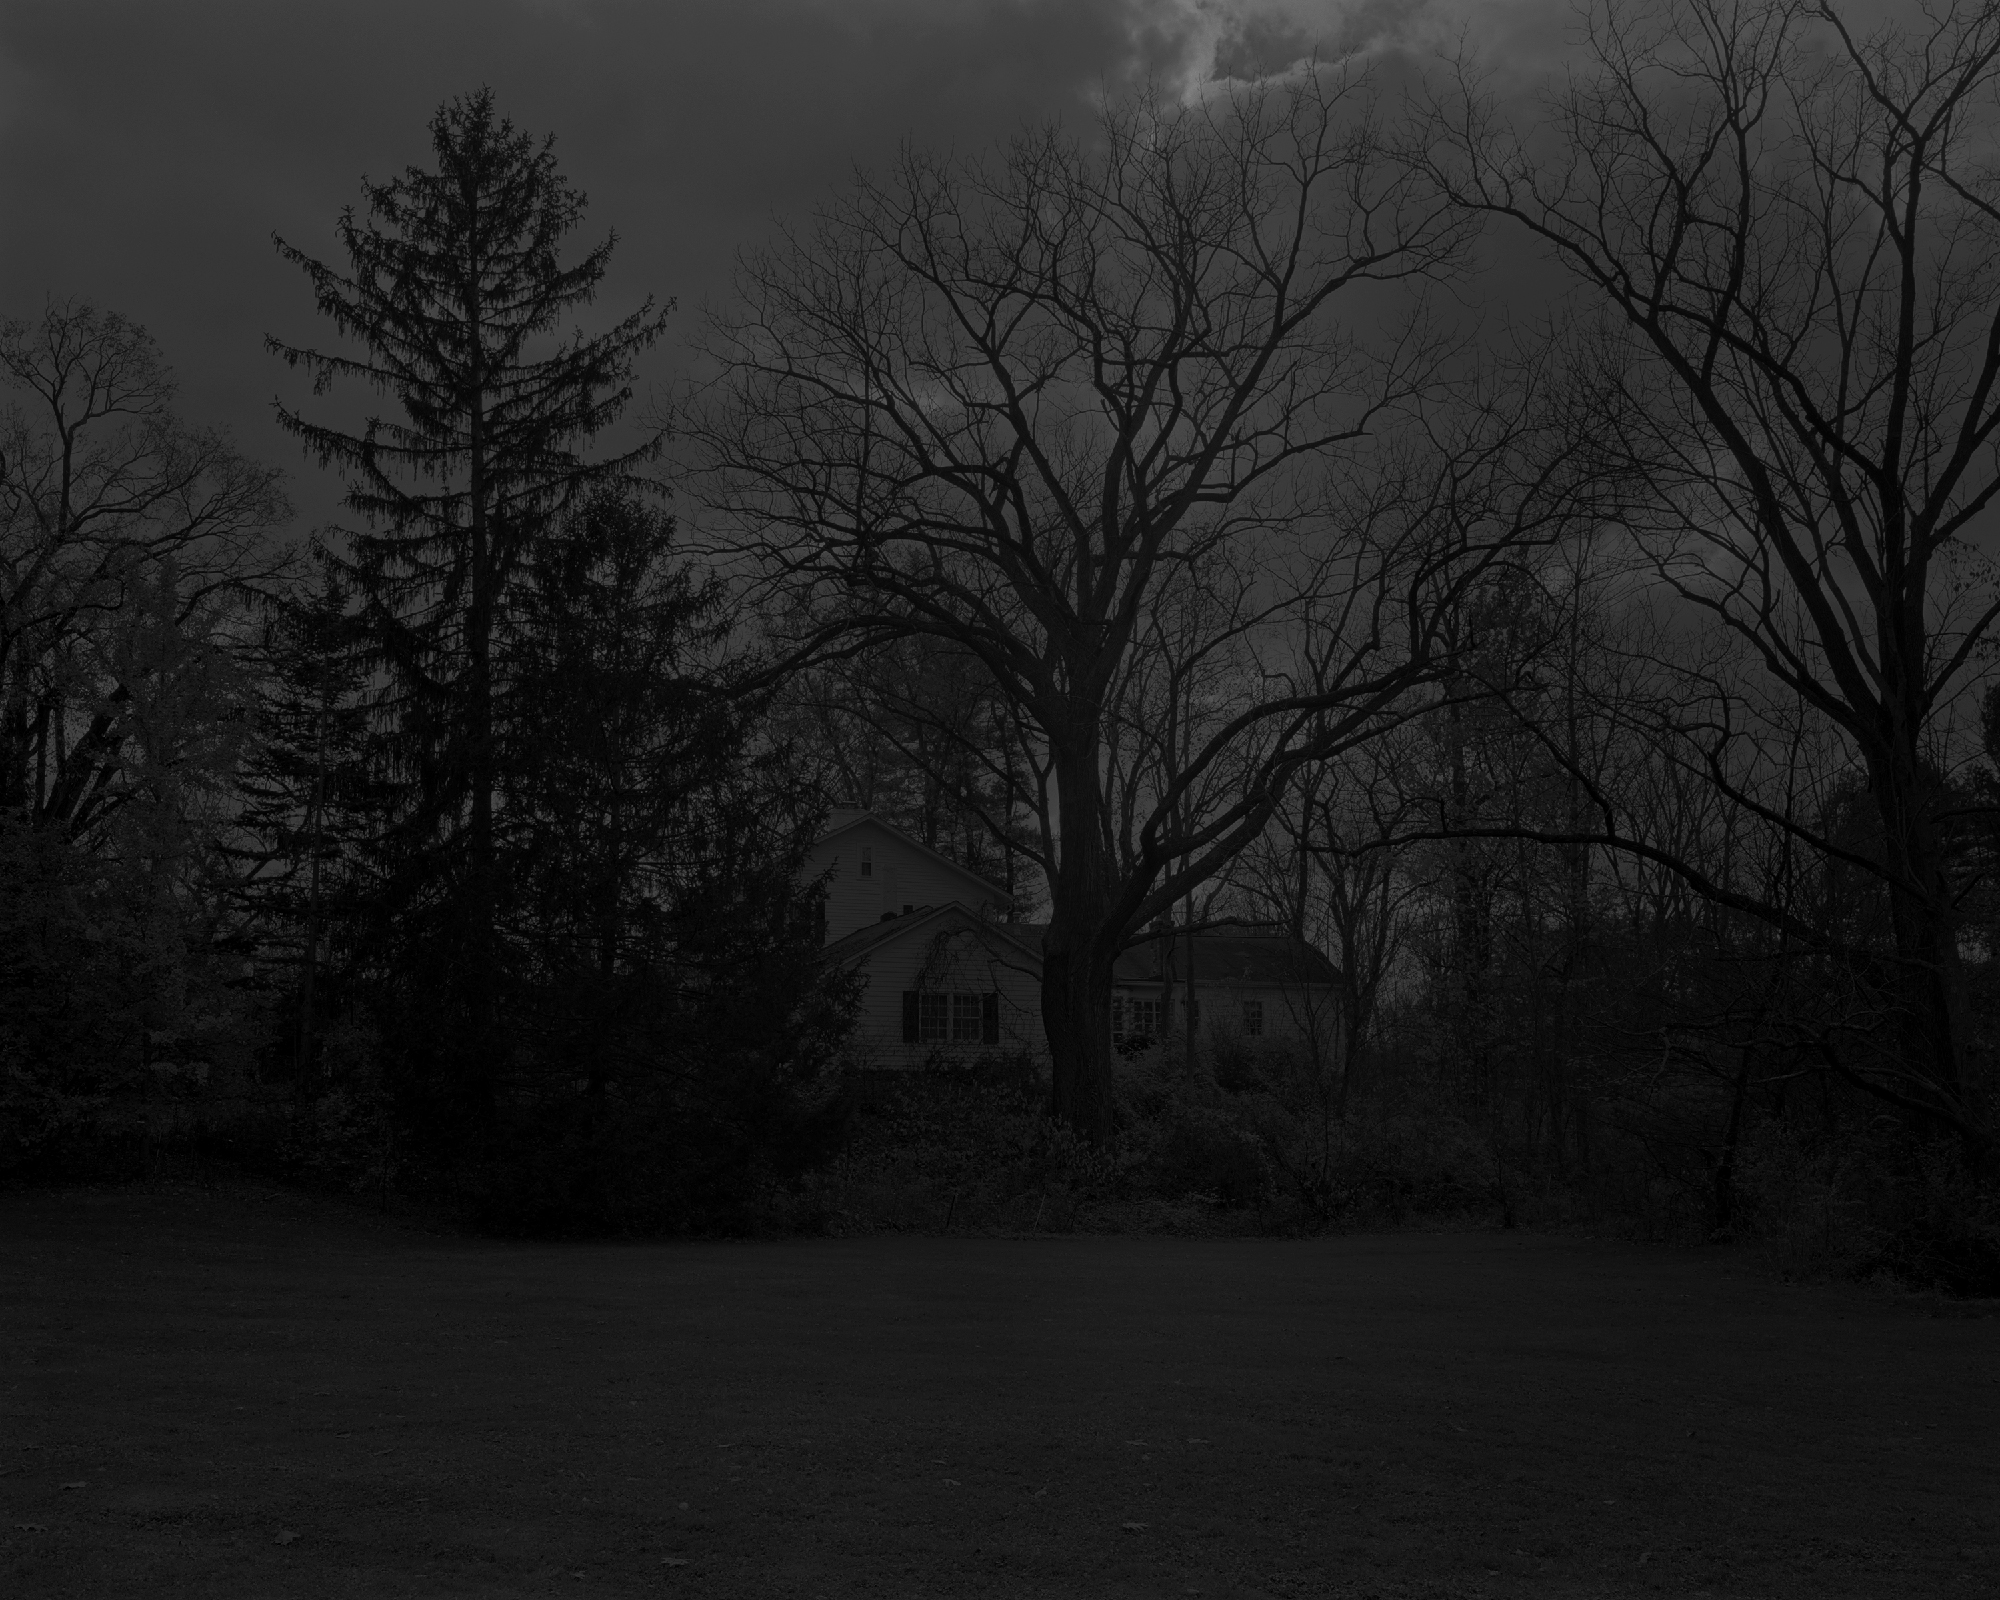 Dawoud Bey, Night Coming Tenderly, Black: Untitled #1 (Picket Fence and Farmhouse), 2017. Gelatin silver print, 111.8 x 139.7 cm. Courtesy Rena Bransten Gallery, San Francisco